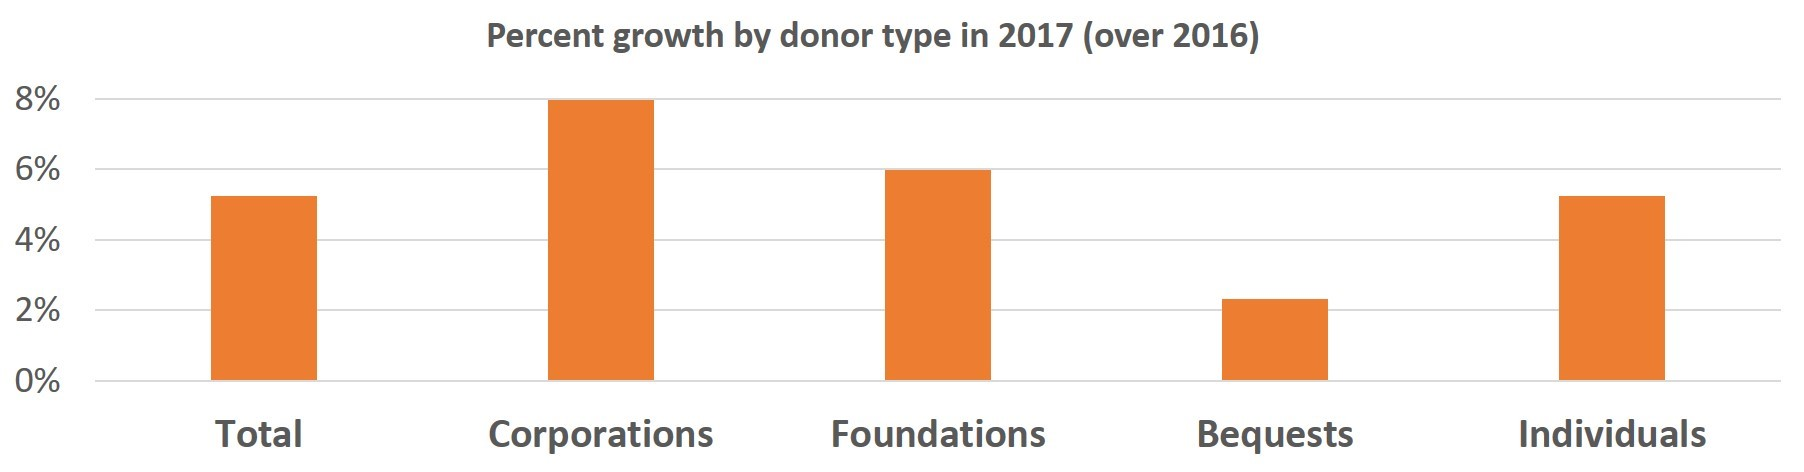 Percent Growth by Donor Type.jpg